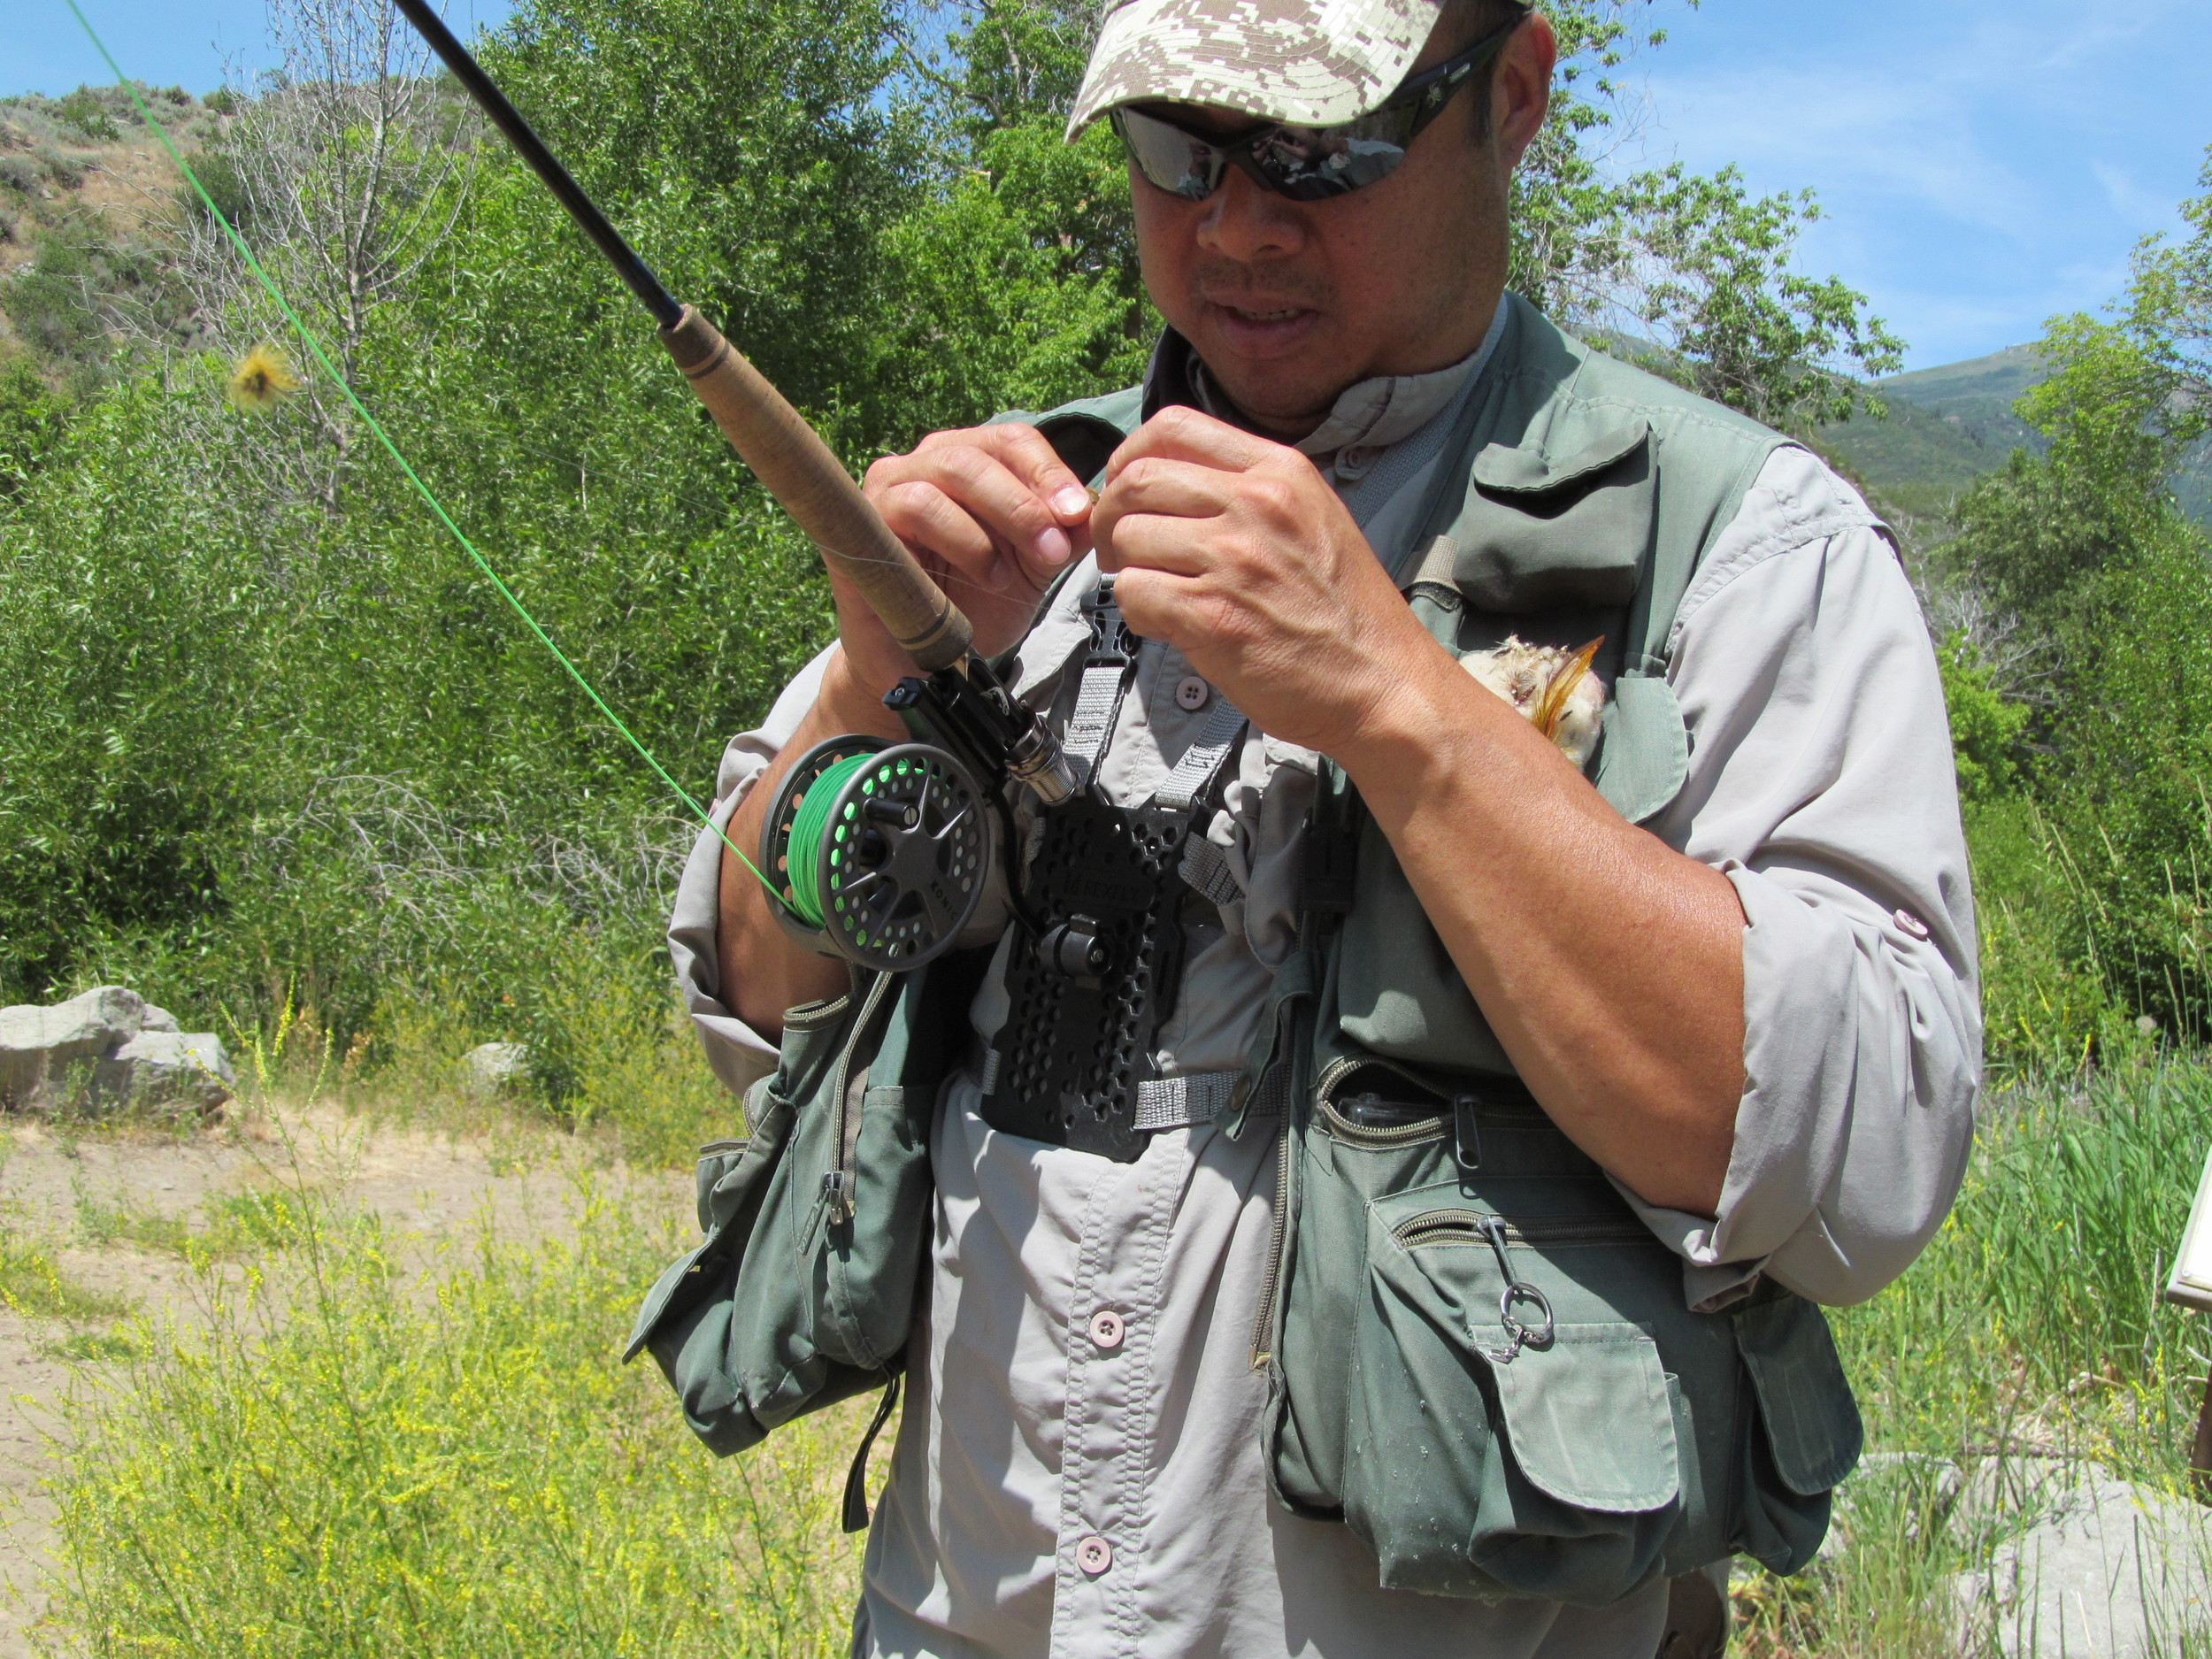 Rexfly Fly Rod Holder.JPG